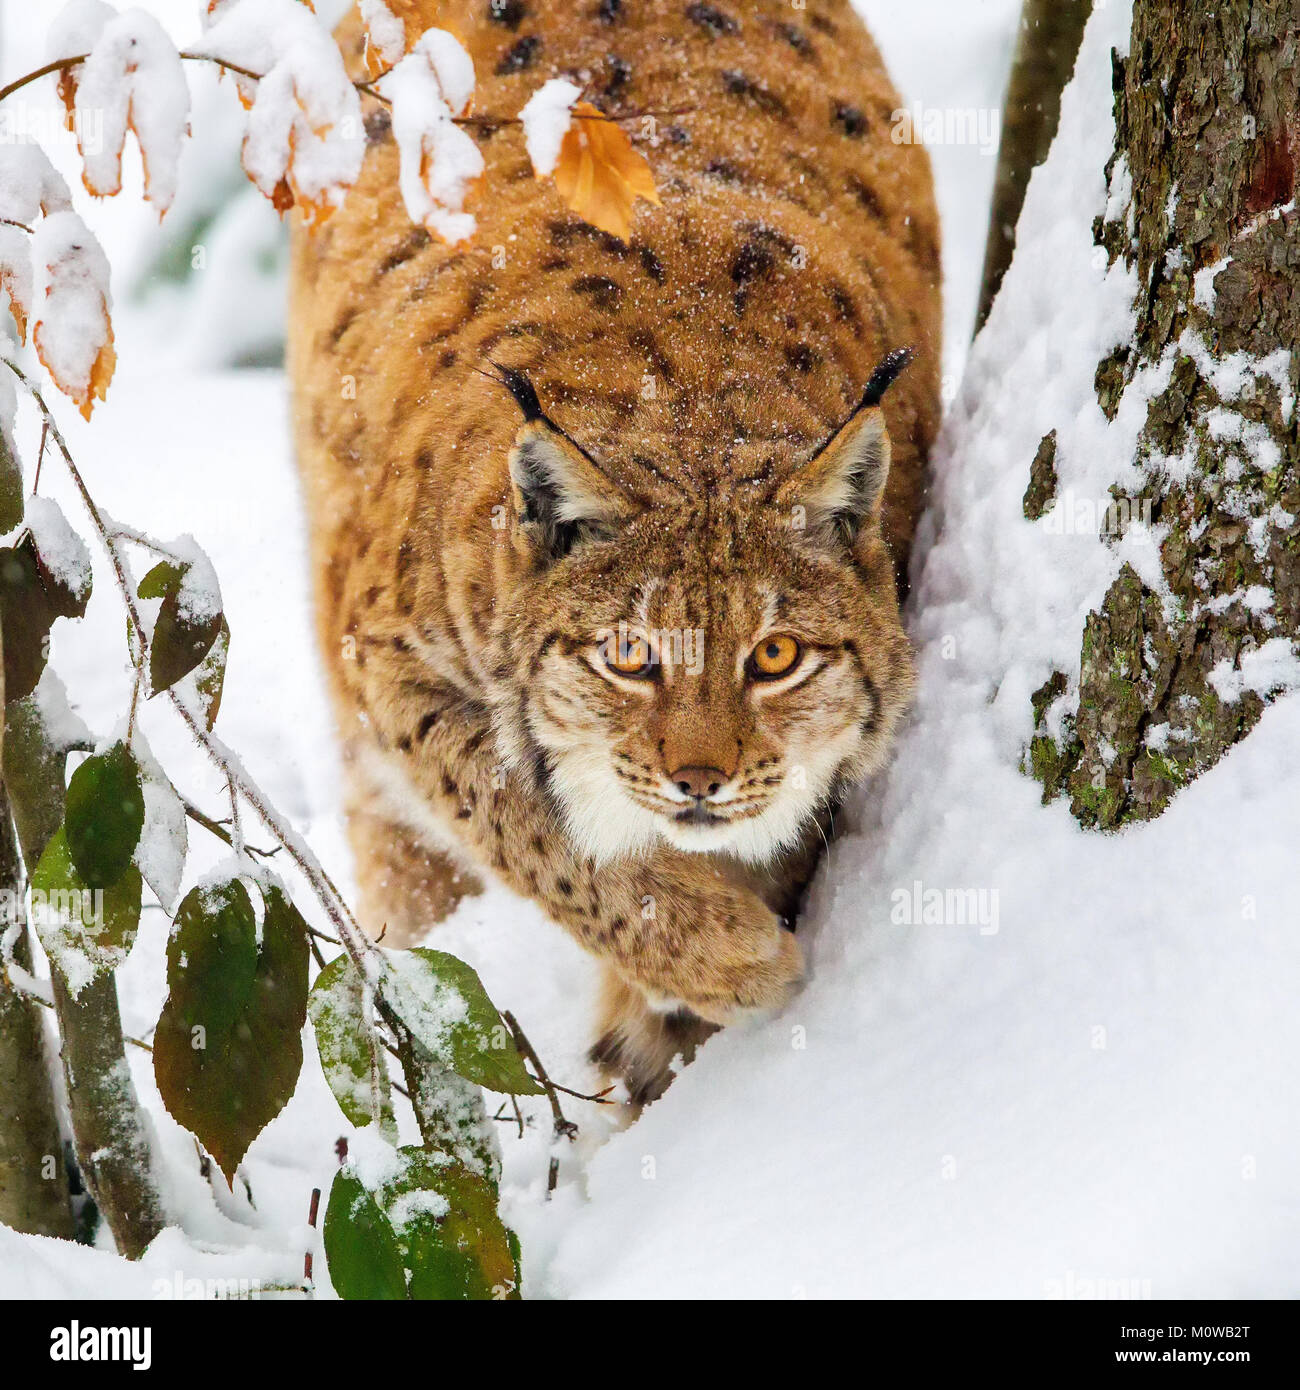 Eurasian lynx (Lynx lynx) in the snow in the animal enclosure in the Bavarian Forest National Park, Bavaria, Germany. - Stock Image